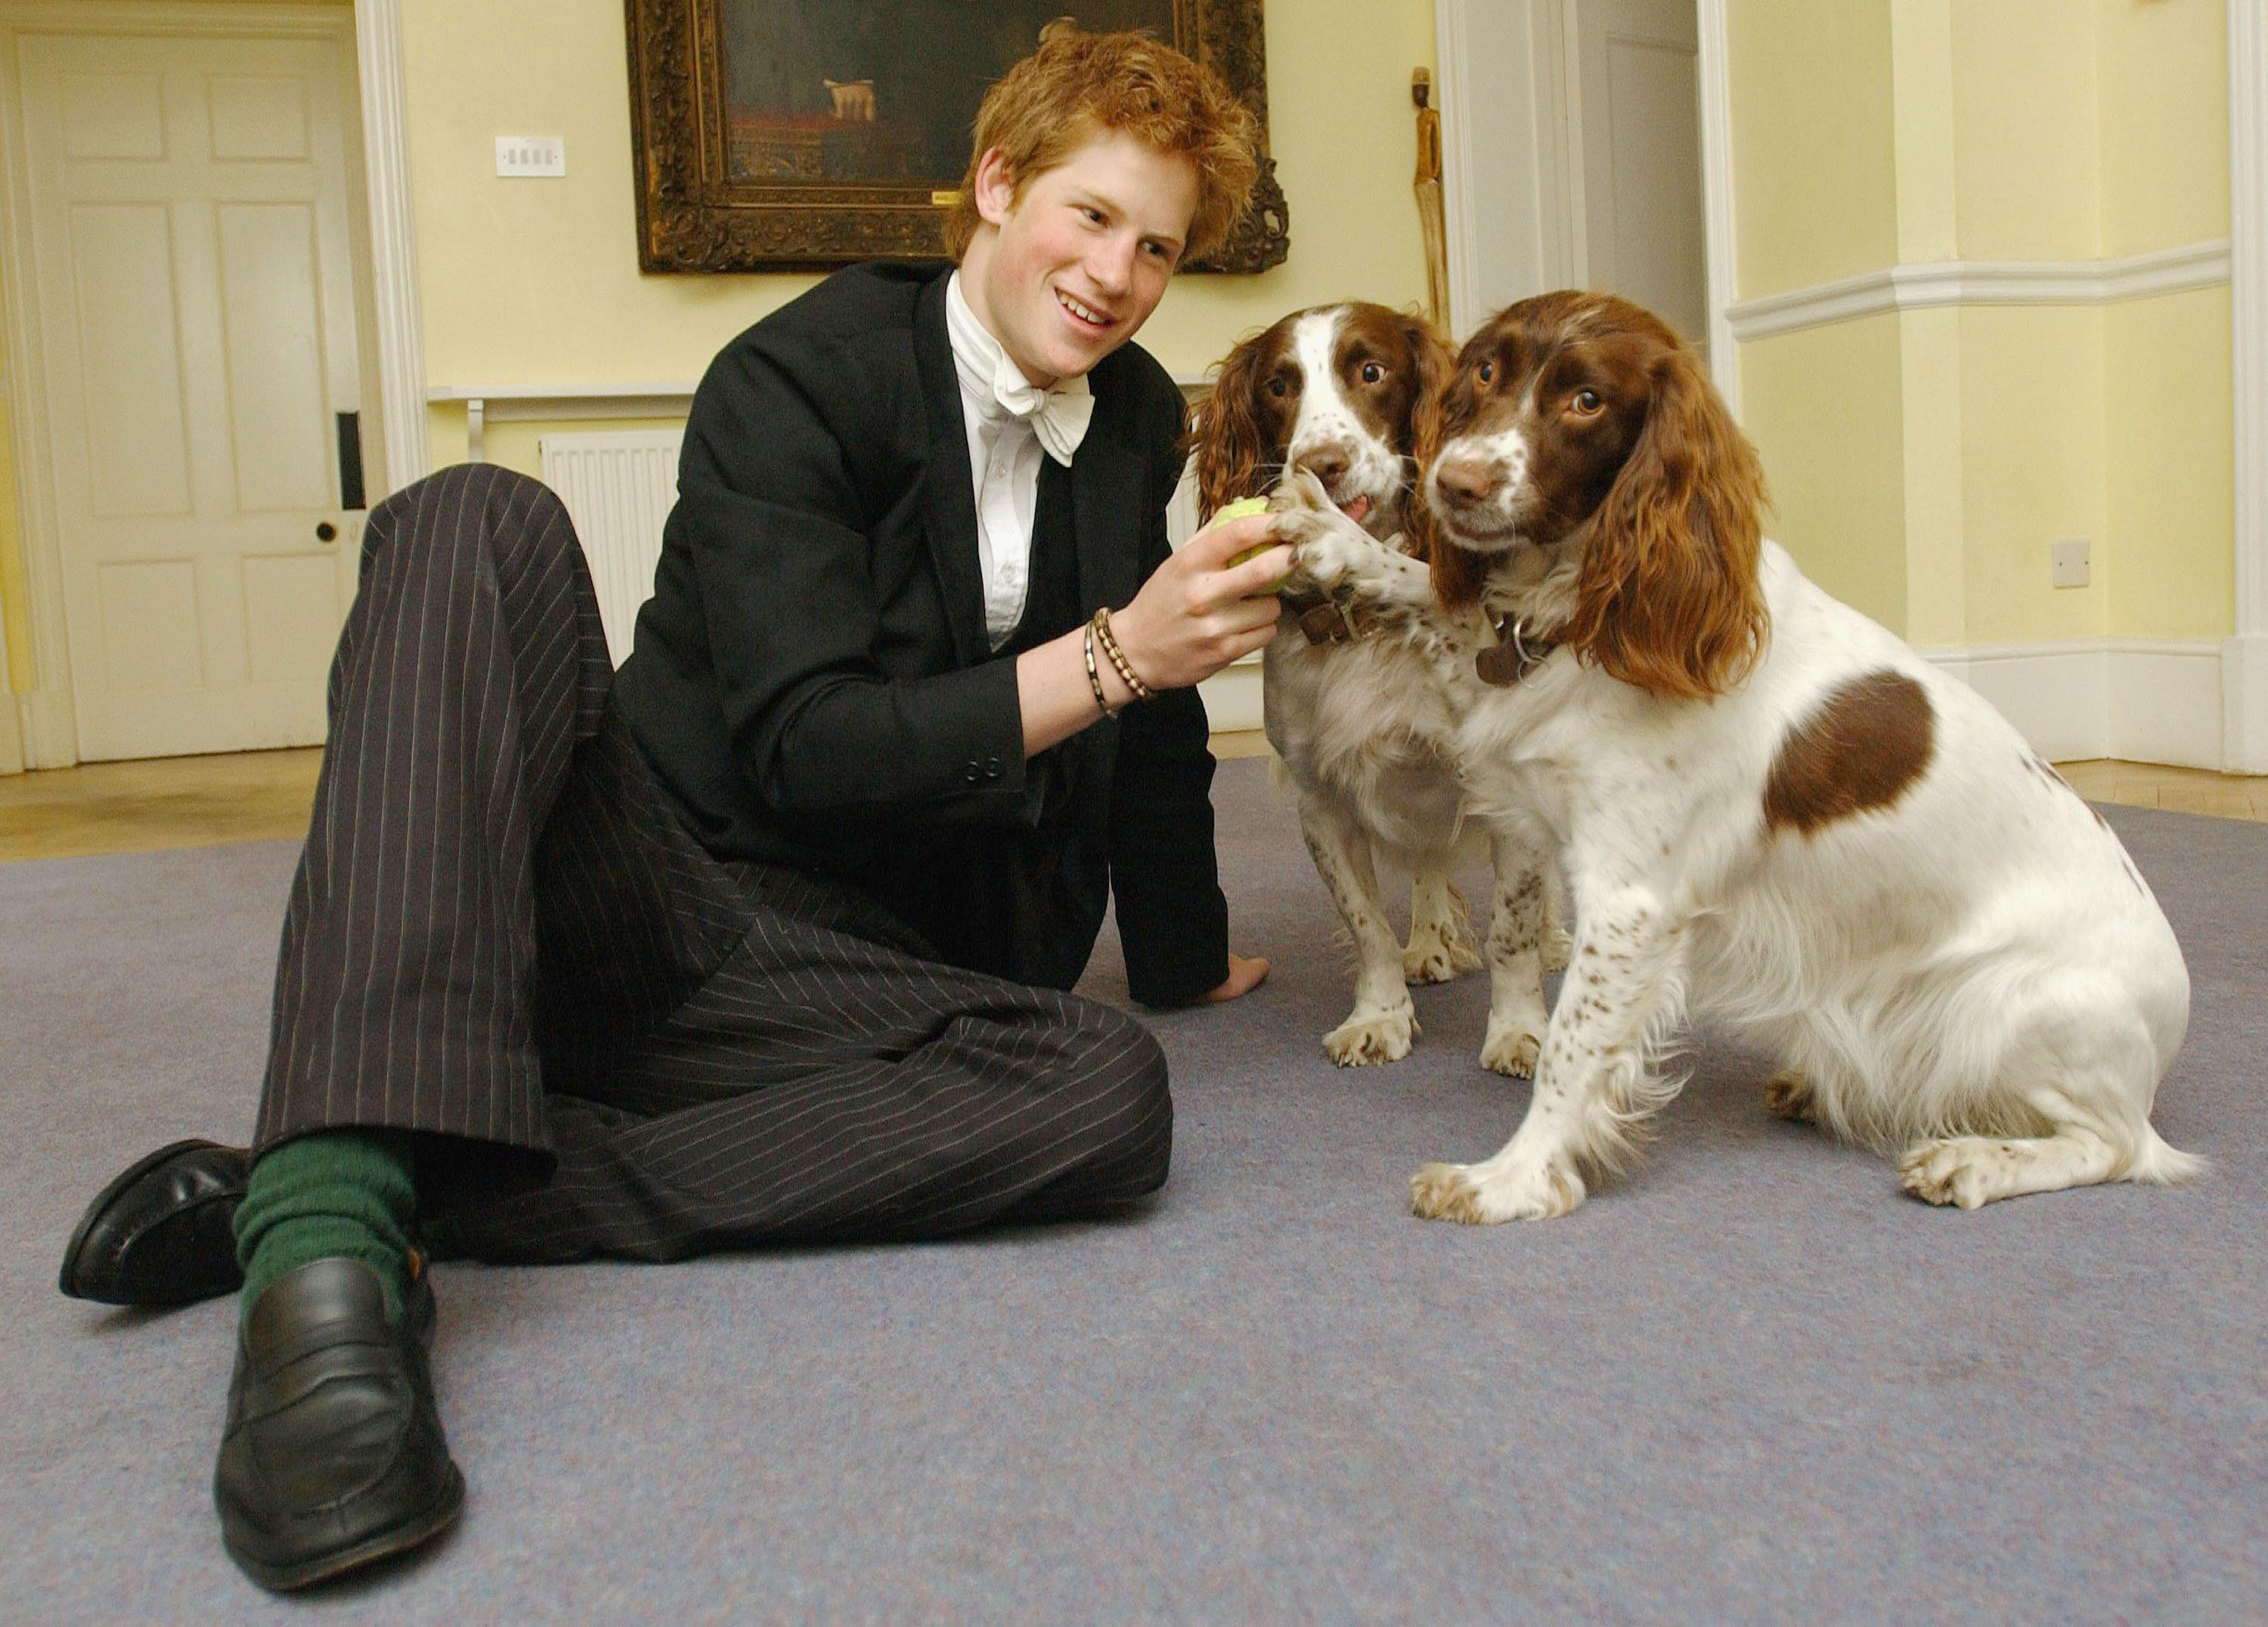 Prince Harry plays with Rosie and Jenny, two dogs owned by Andrew Gailey, the housemaster of the Manor House, in March 2003.